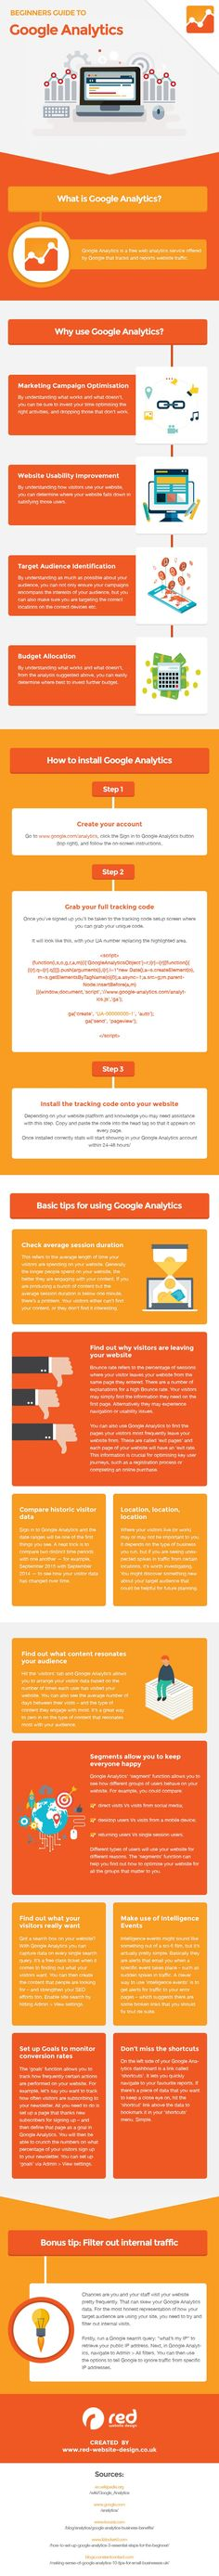 How to Use Google Analytics to Track Your Website Visitors [Infographic] | Social Media Today